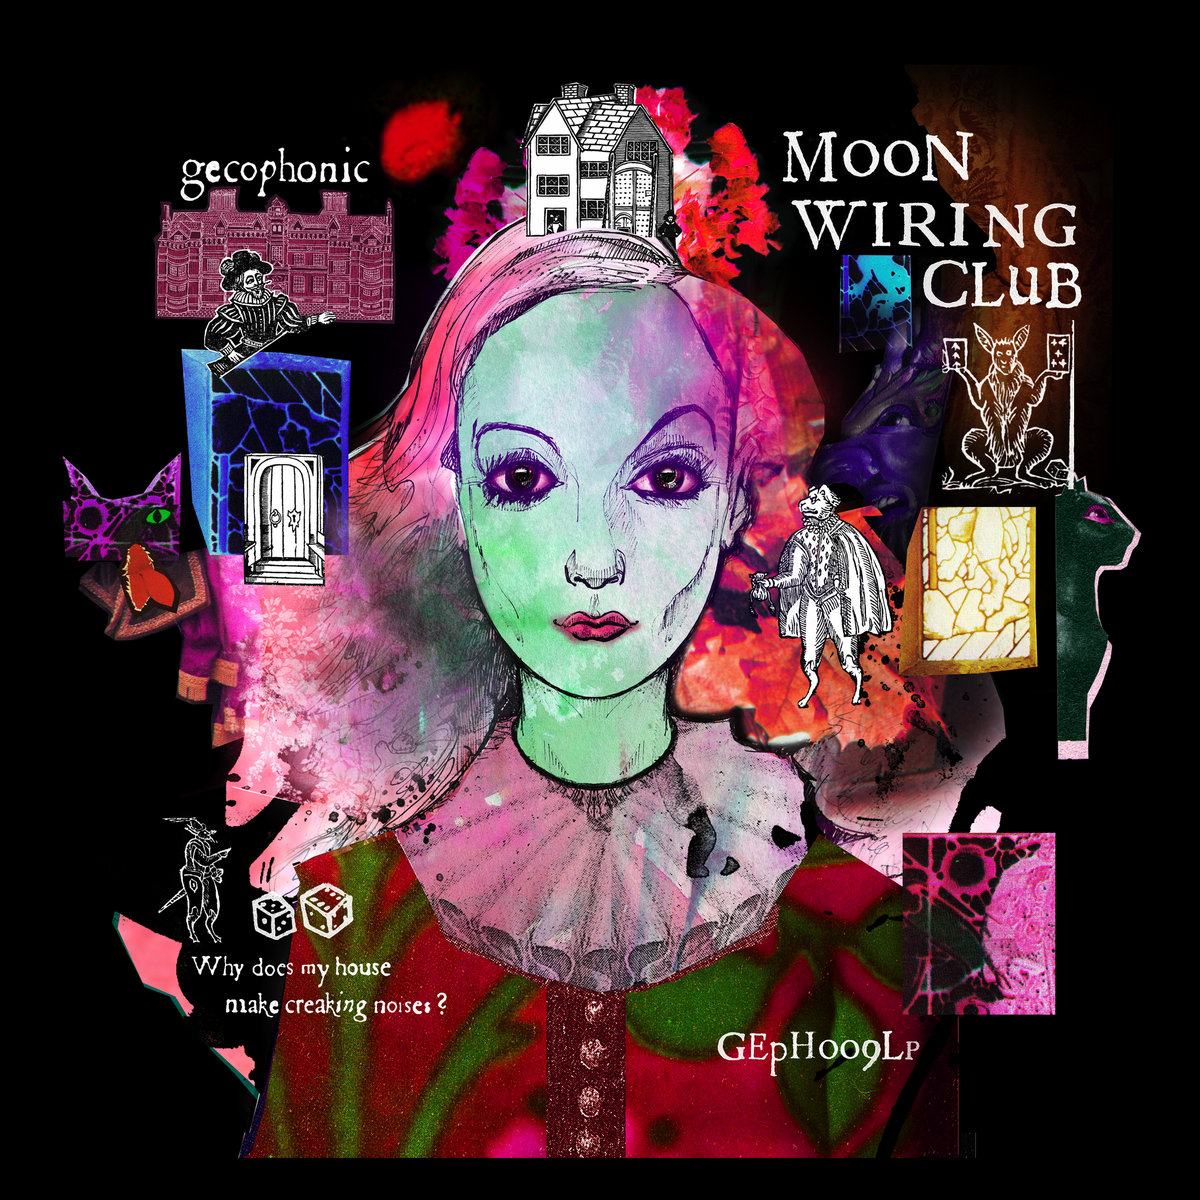 music moon wiring club rh moonwiringclub bandcamp com moon wiring club twitter moon wiring club twitter